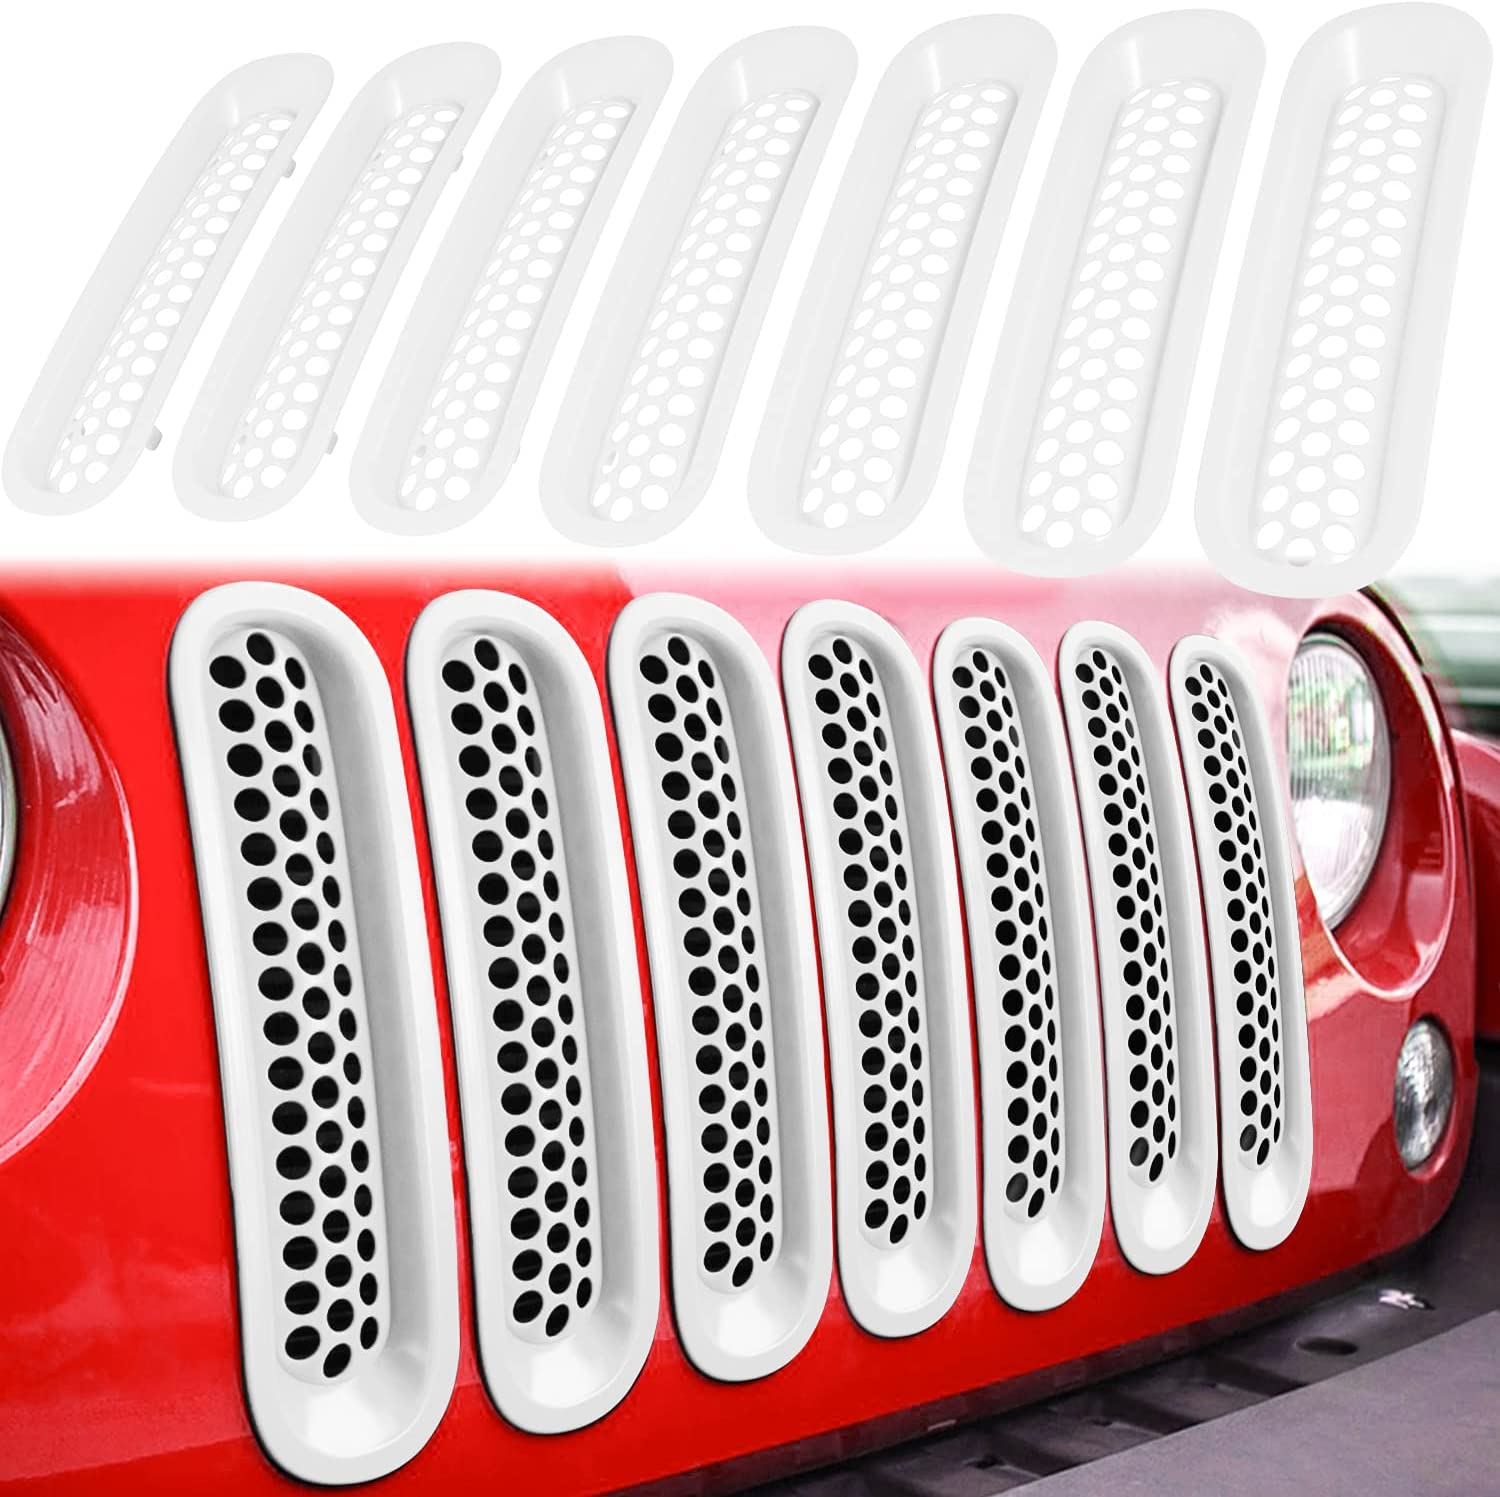 E-cowlboy 7PCS Front Grill Superlatite Mesh Clip-in Grille Department store for Inserts Guard